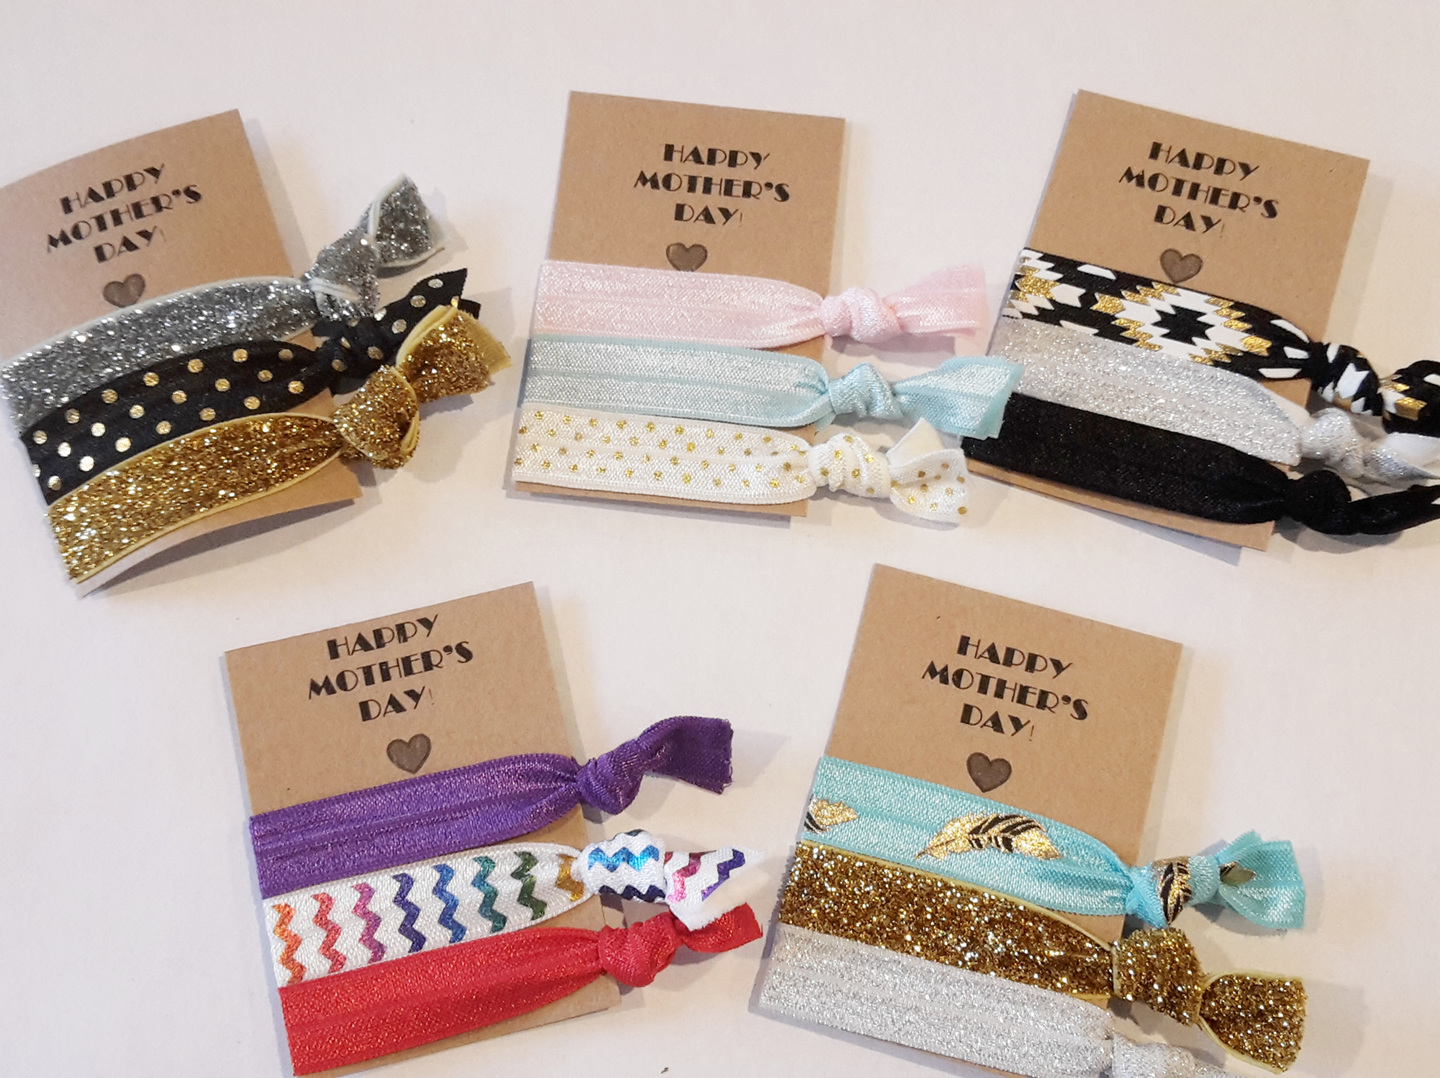 Happy Mother's Day Hair Ties Pack - available in different designs.